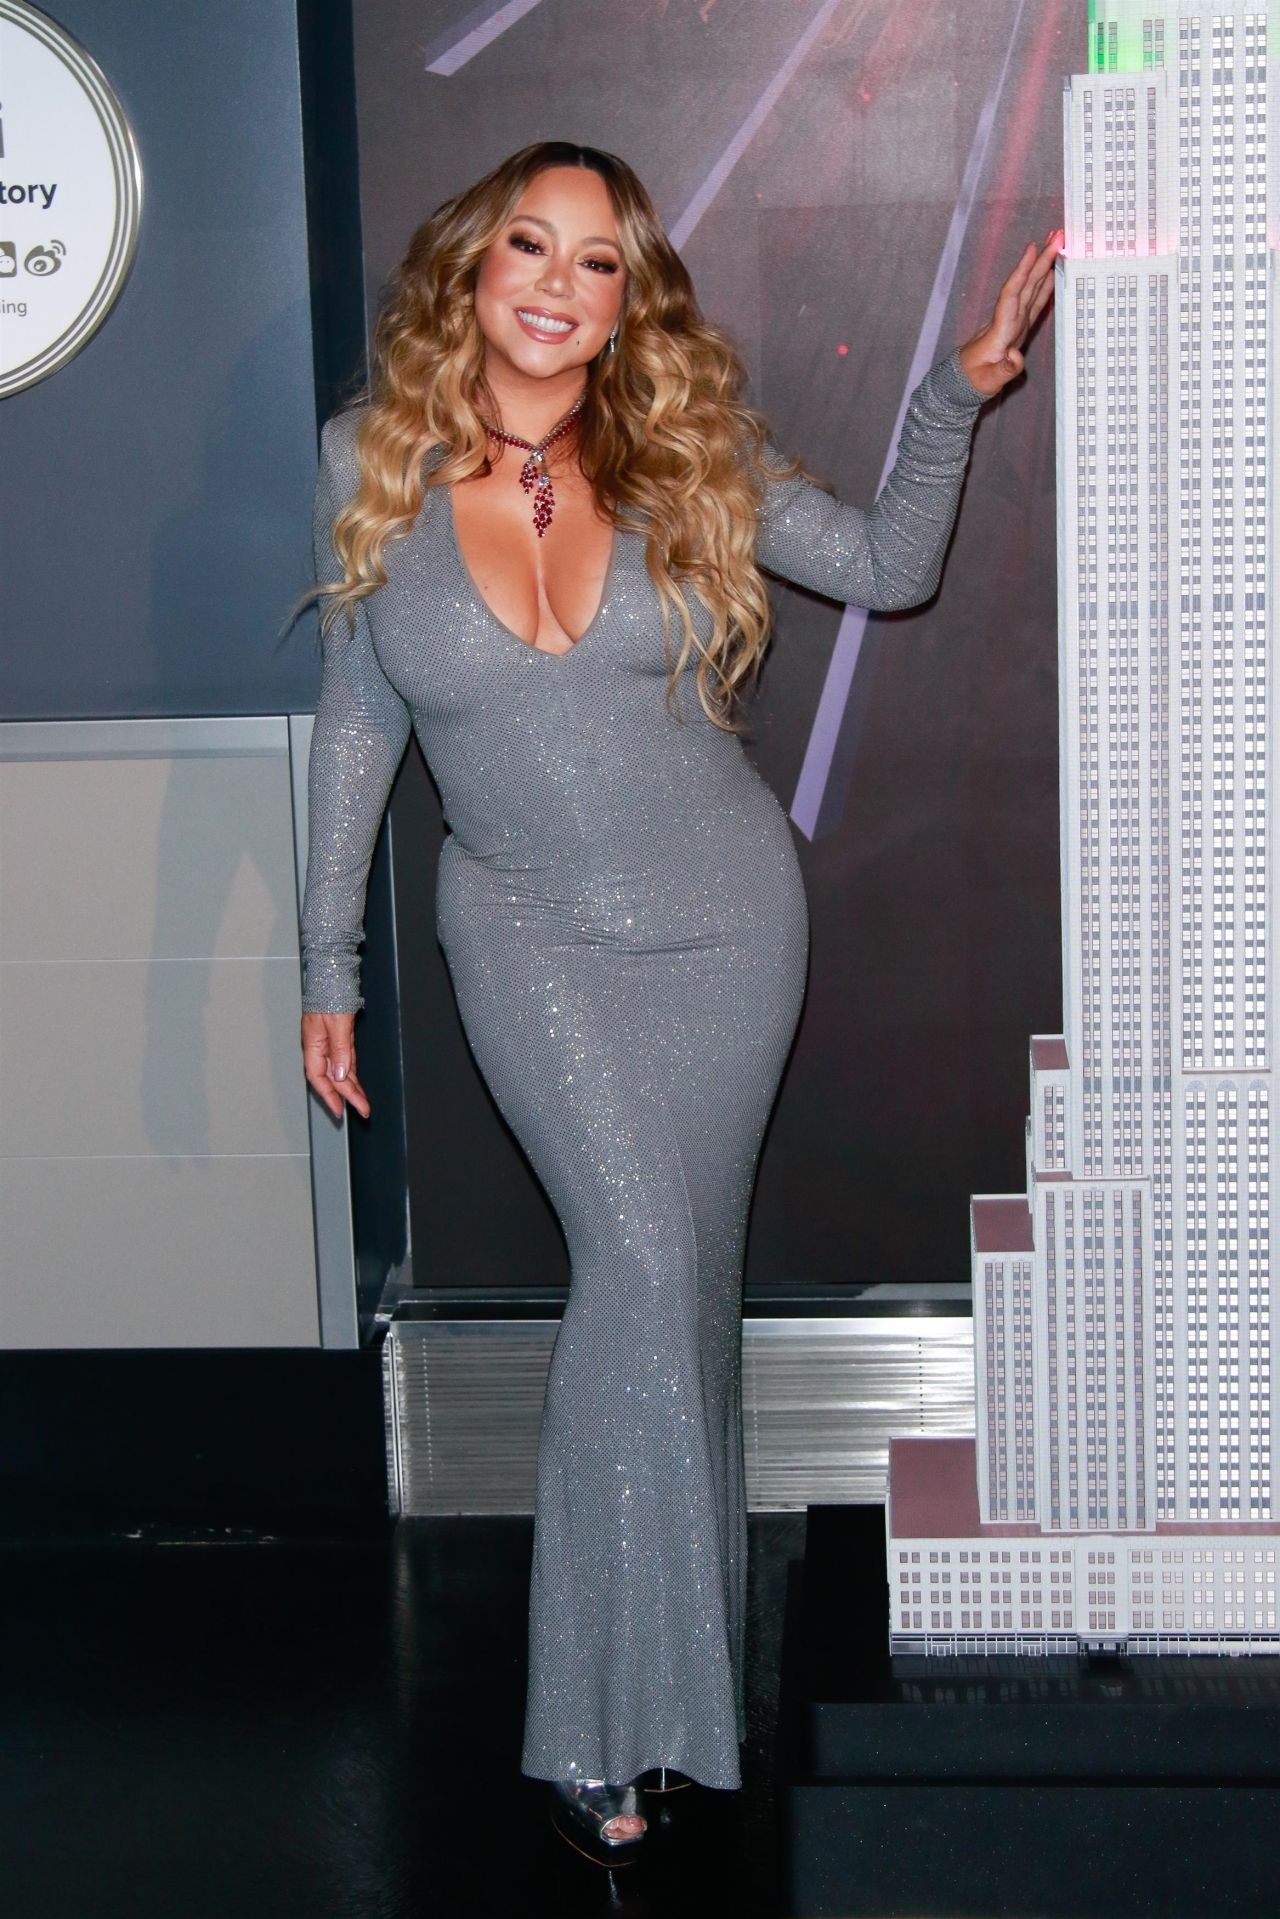 mariah-carey-in-alexandre-vauthier-lights-the-empire-state-building-in-new-york